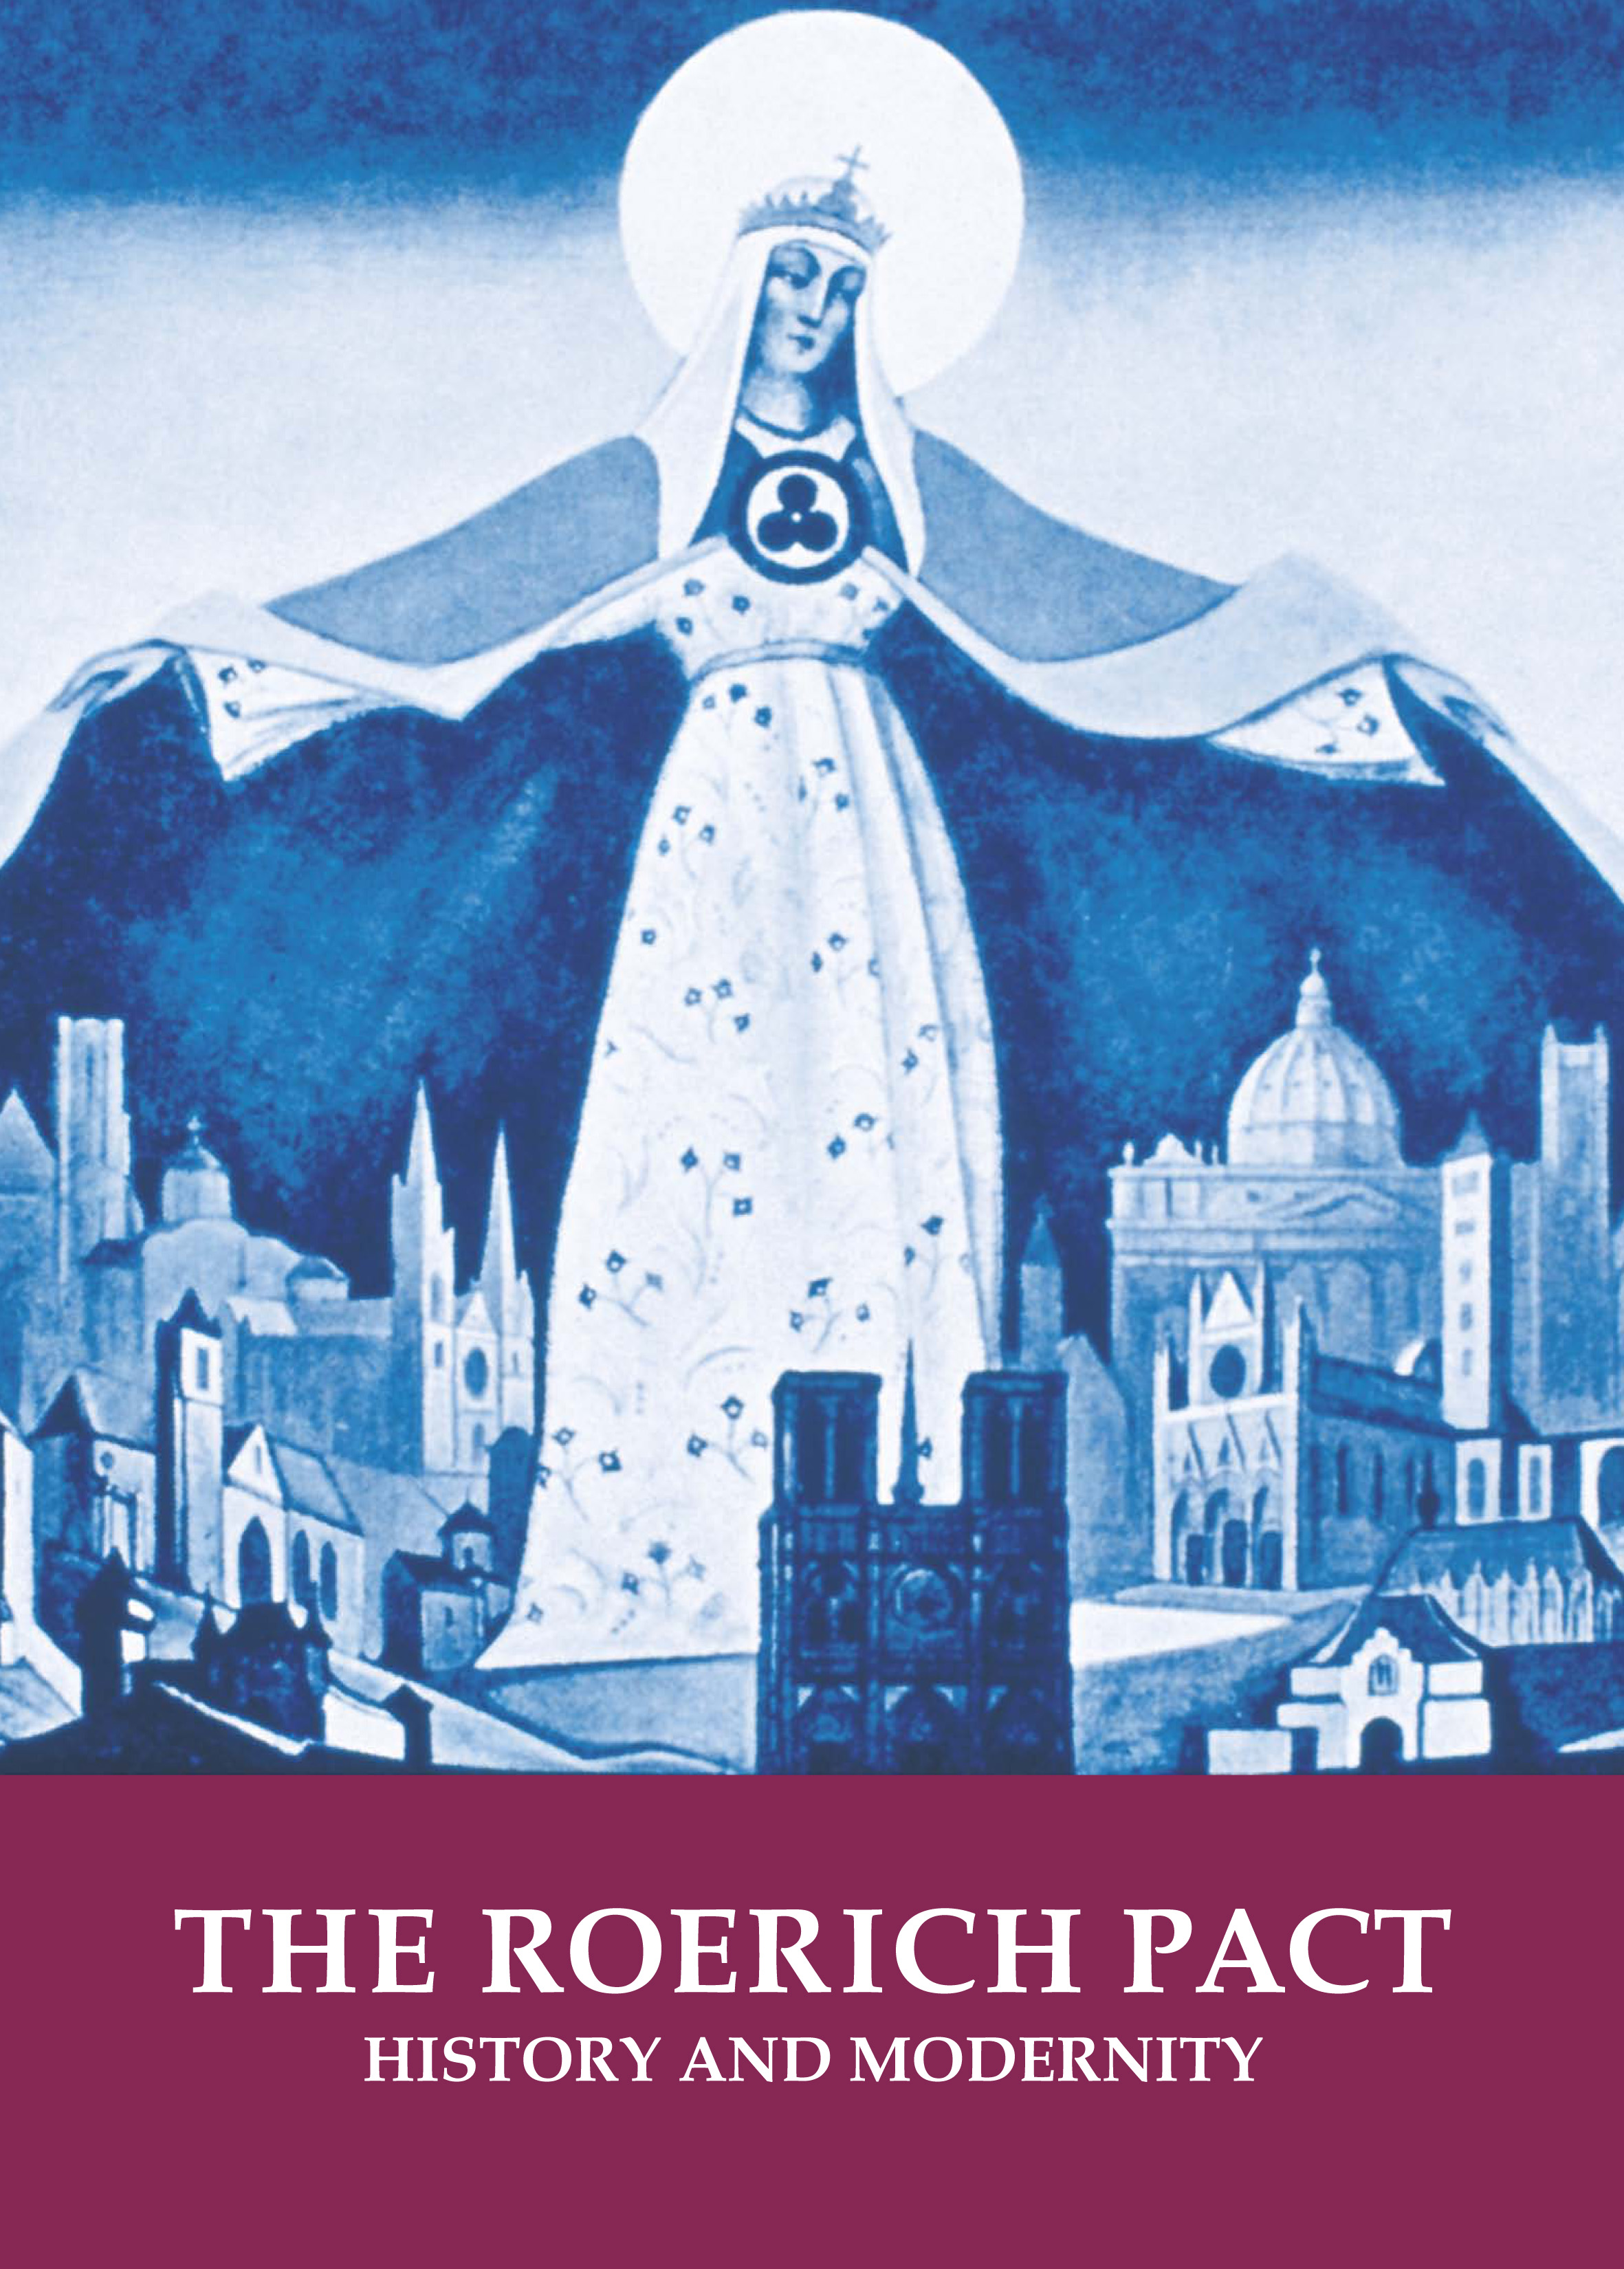 The Roerich Pact. History and modernity. On the Occasion of the 80th Anniversary of the Roerich Pact and 70th Anniversary of the United Nations. Exhibition catalogue